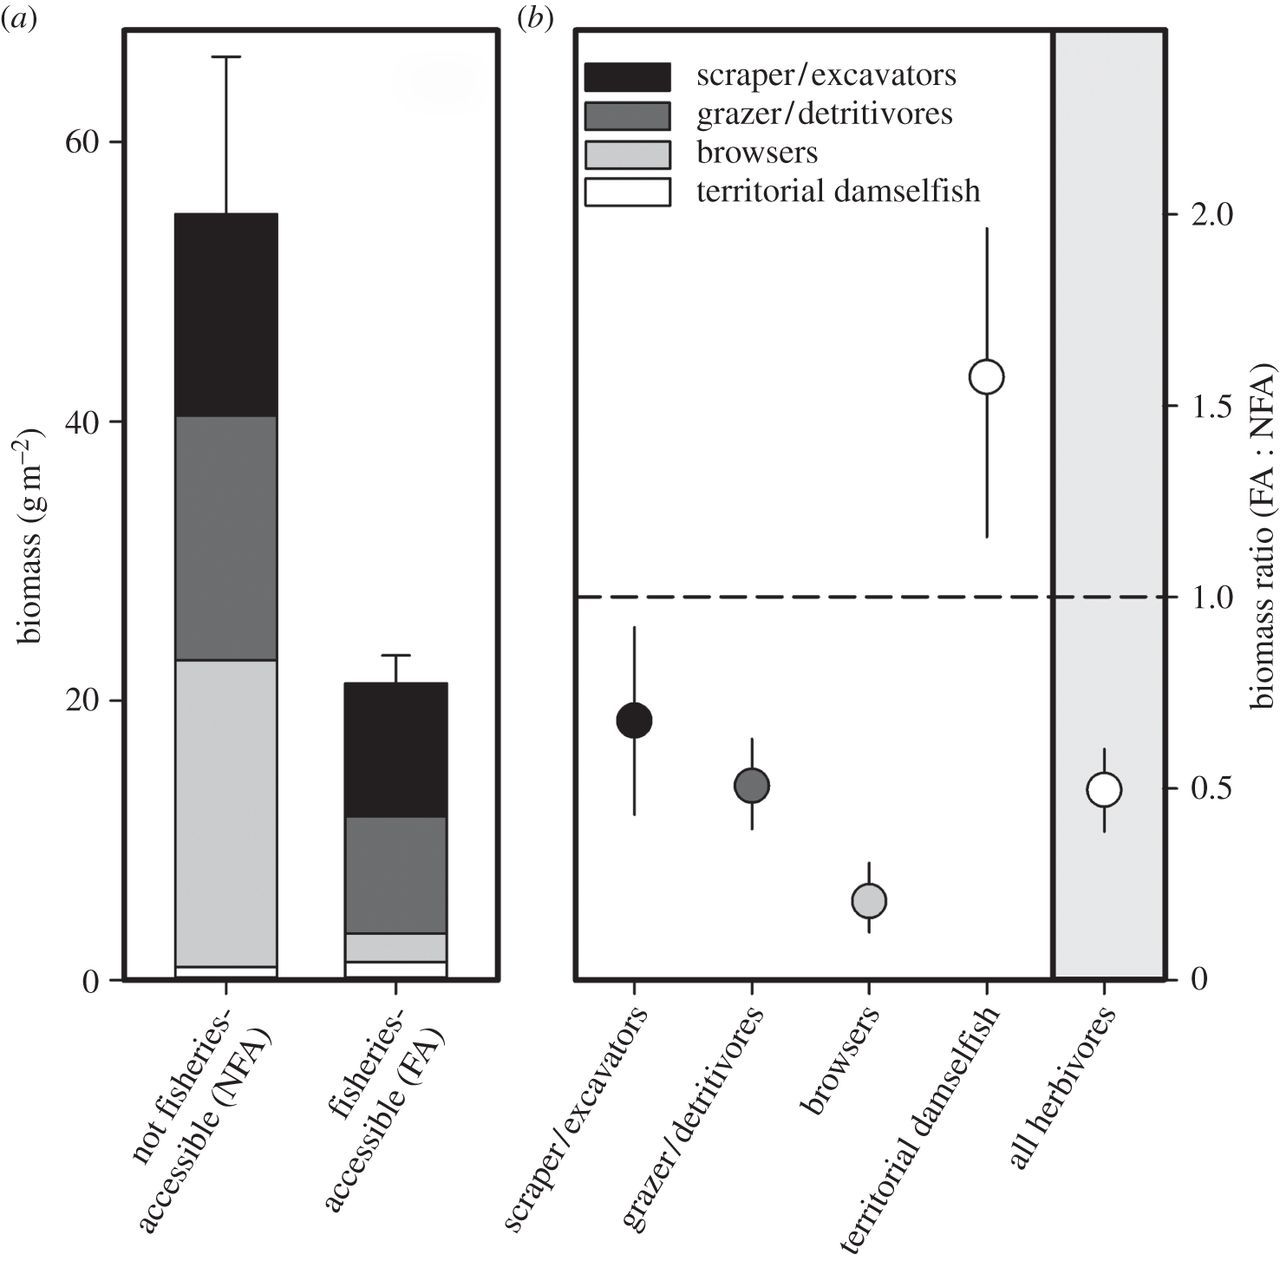 Global assessment of the status of coral reef herbivorous fishes